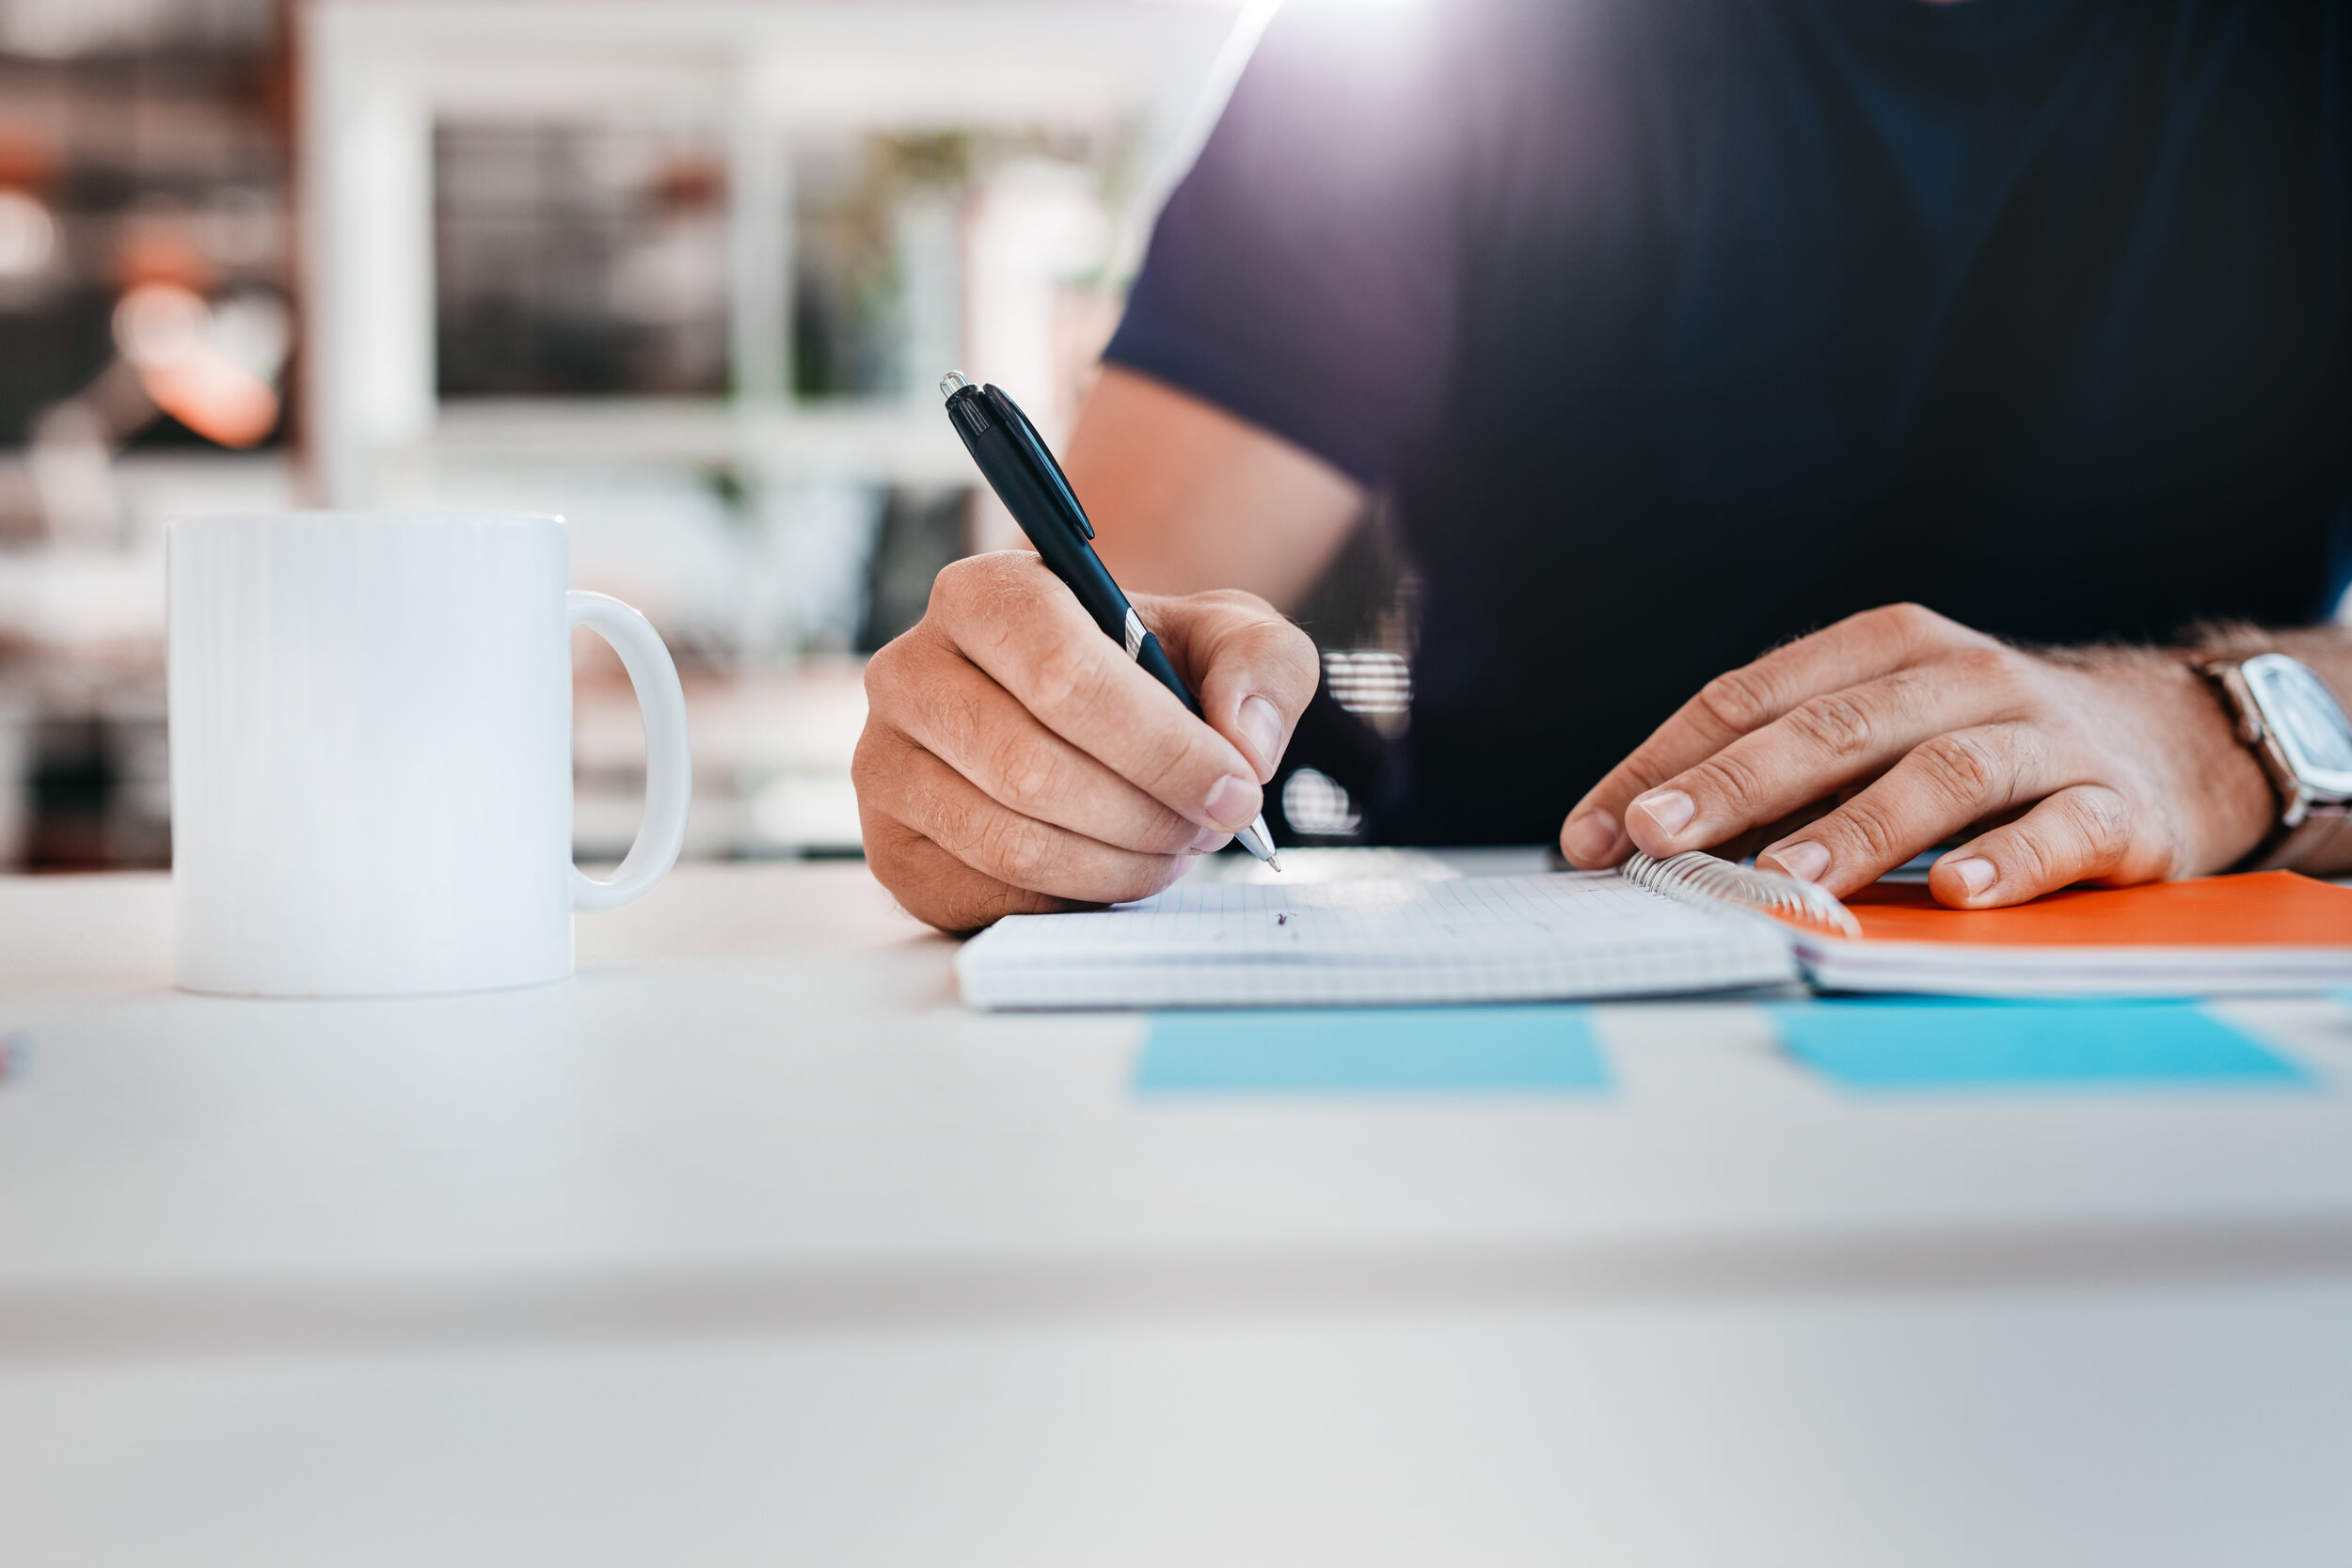 businessman-hands-writing-notes